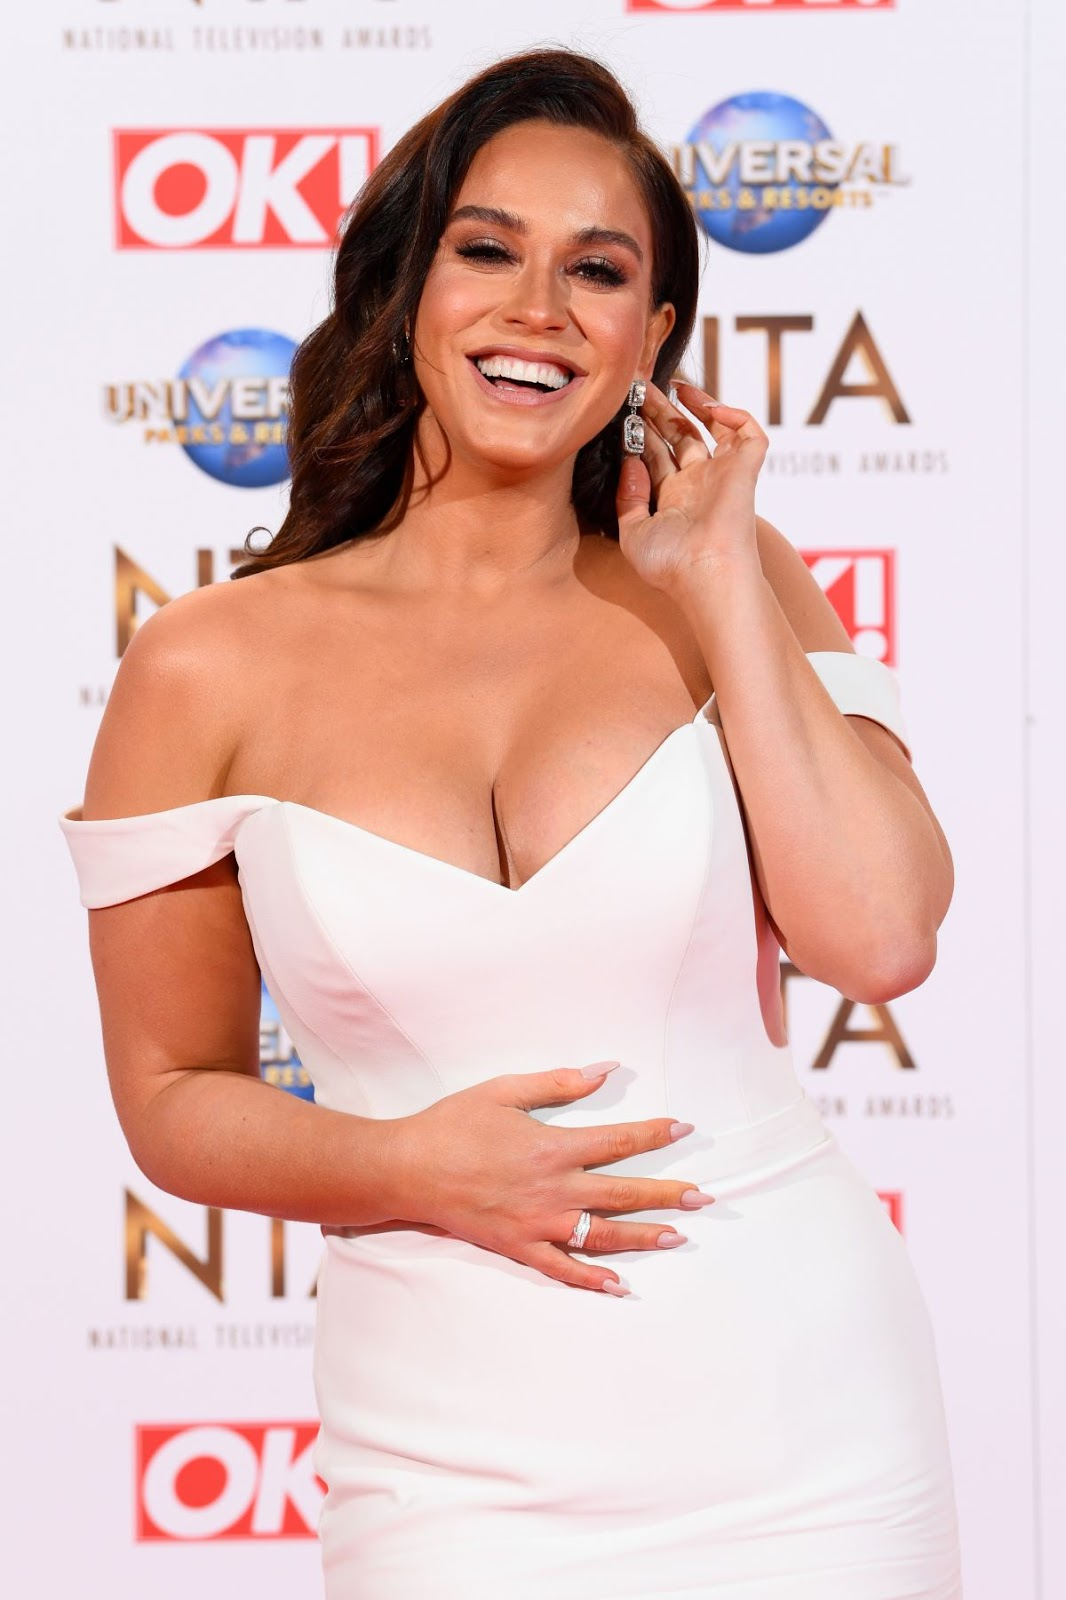 Vicky Pattison Looks Hot in White Outfit